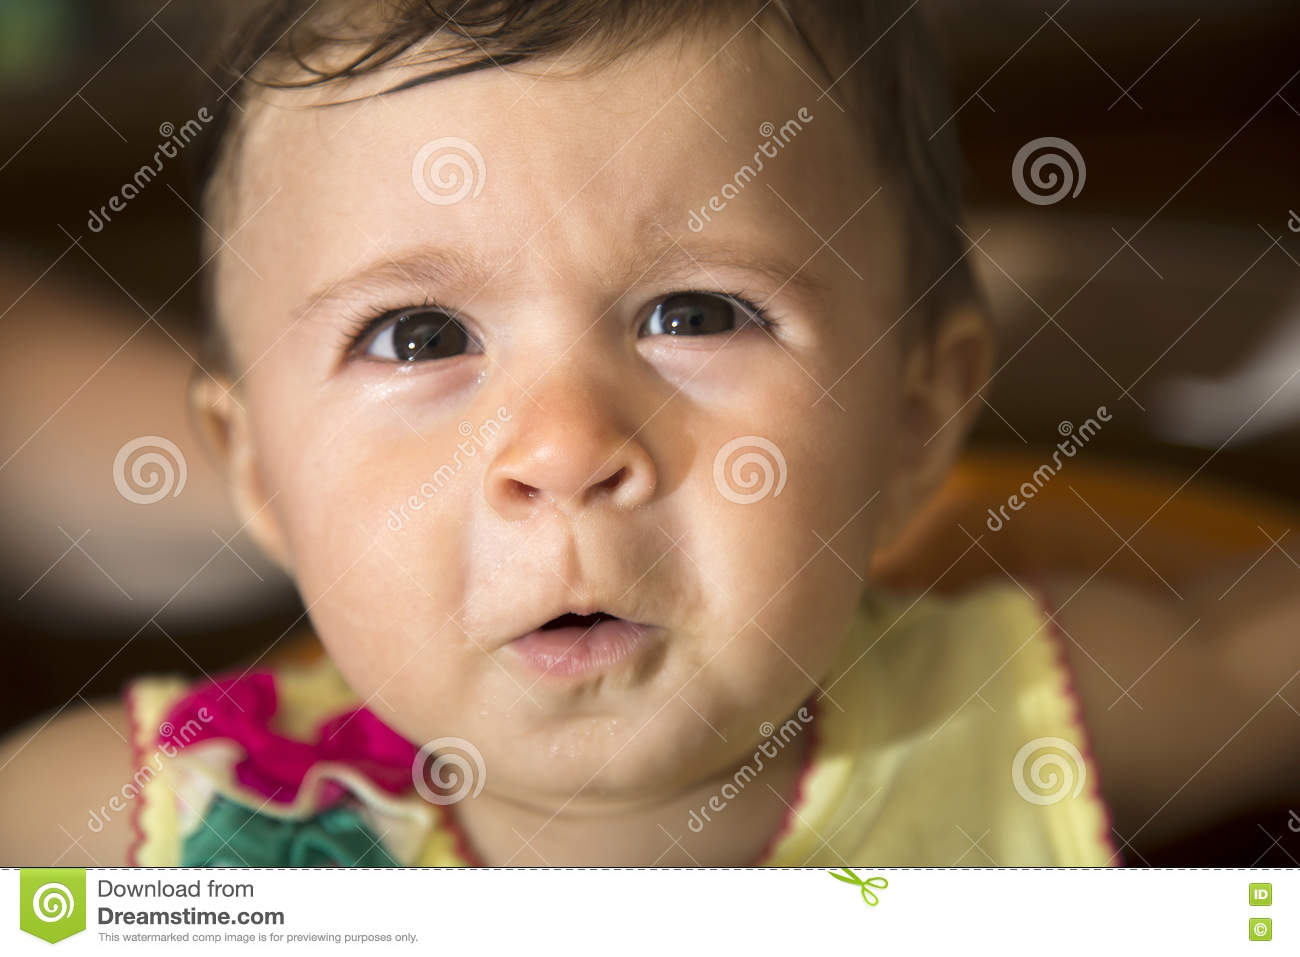 36eb4ce00 Baby Girl Looking At Camera With Funny Face Stock Image - Image of ...